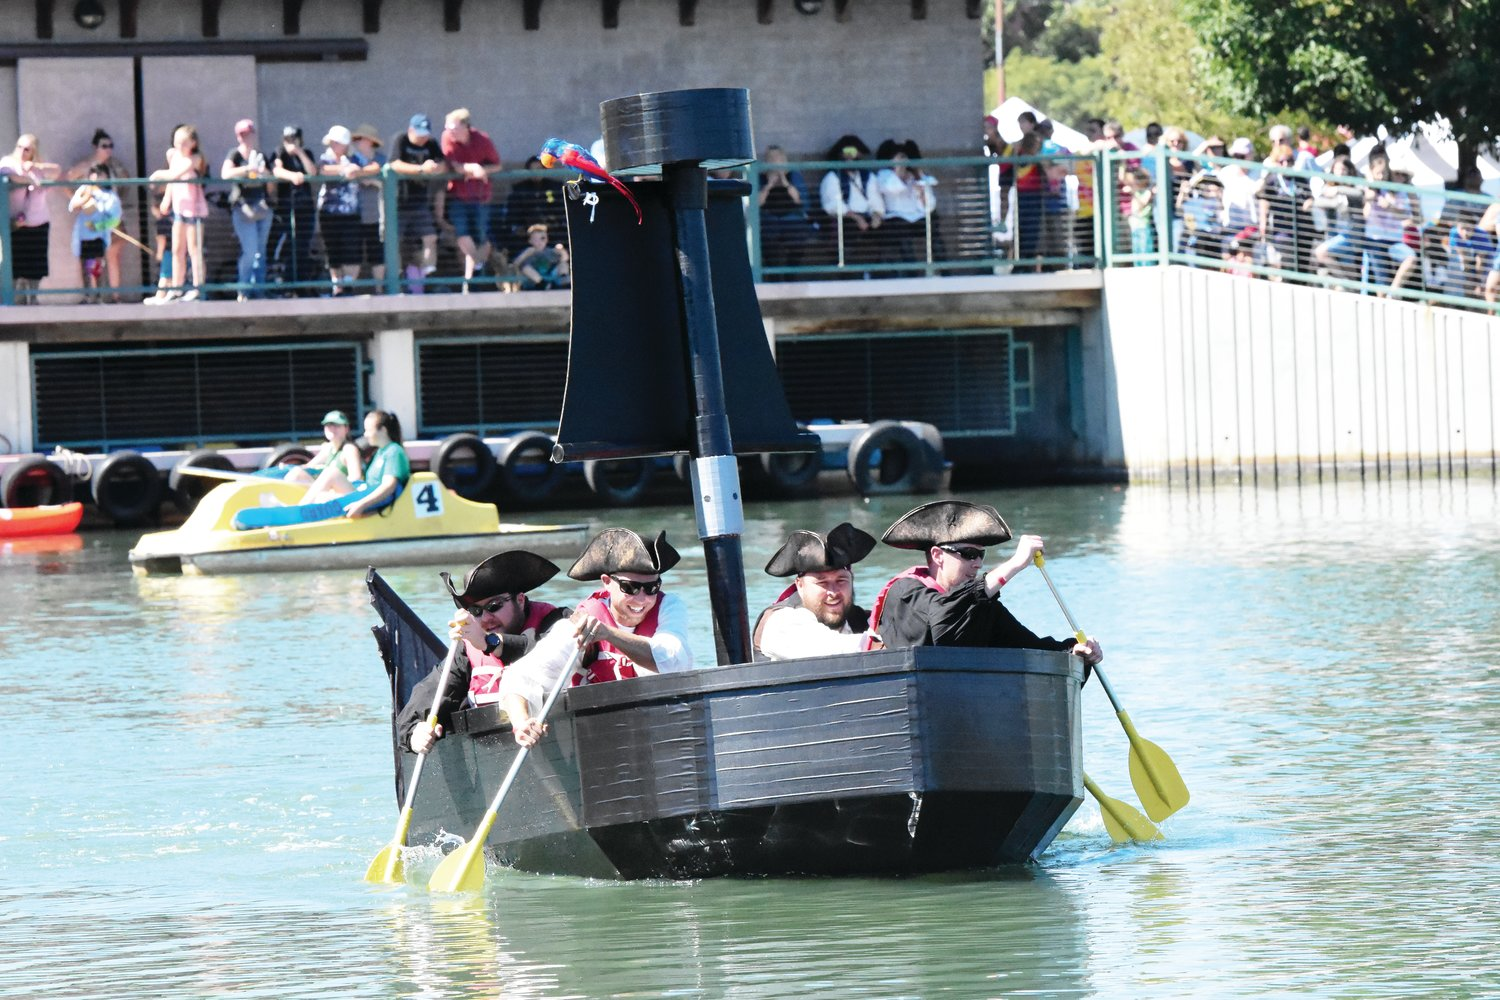 """The """"Sea Dog,"""" commanded by Captain Josh Otterstrom, front right, of Highlands Ranch, competes in this year's Cardboard Regatta at Northglenn's annual Pirate Fest Sept. 15 at E. B. Rains, Jr. Memorial Park. This vessel took 4 months to complete, according to Otterstrom."""